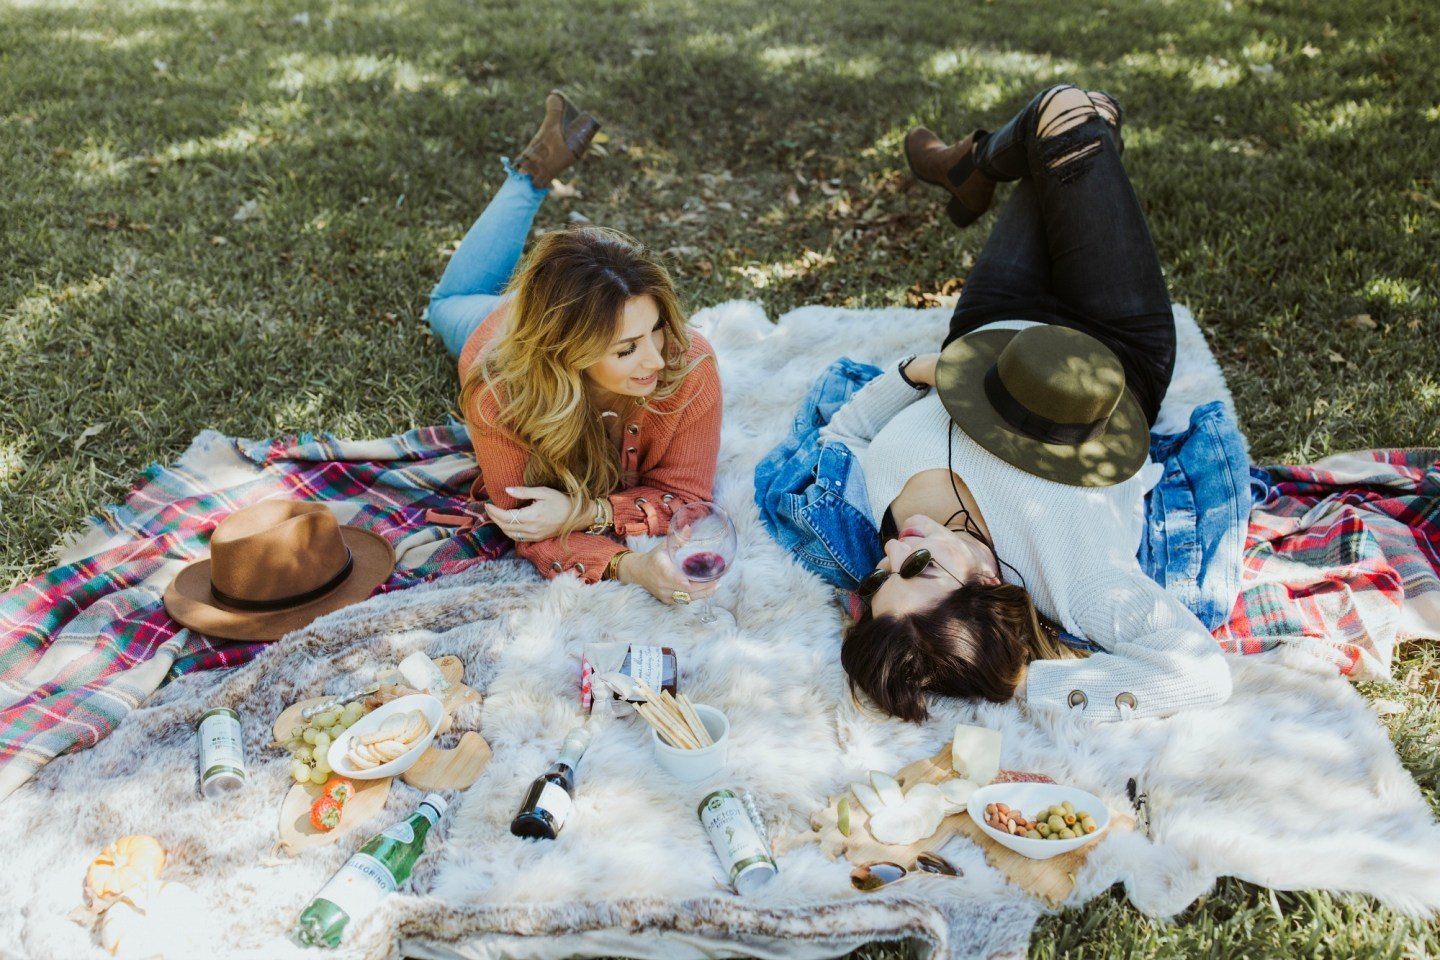 How to Create an Easy French Inspired Fall Picnic Spread